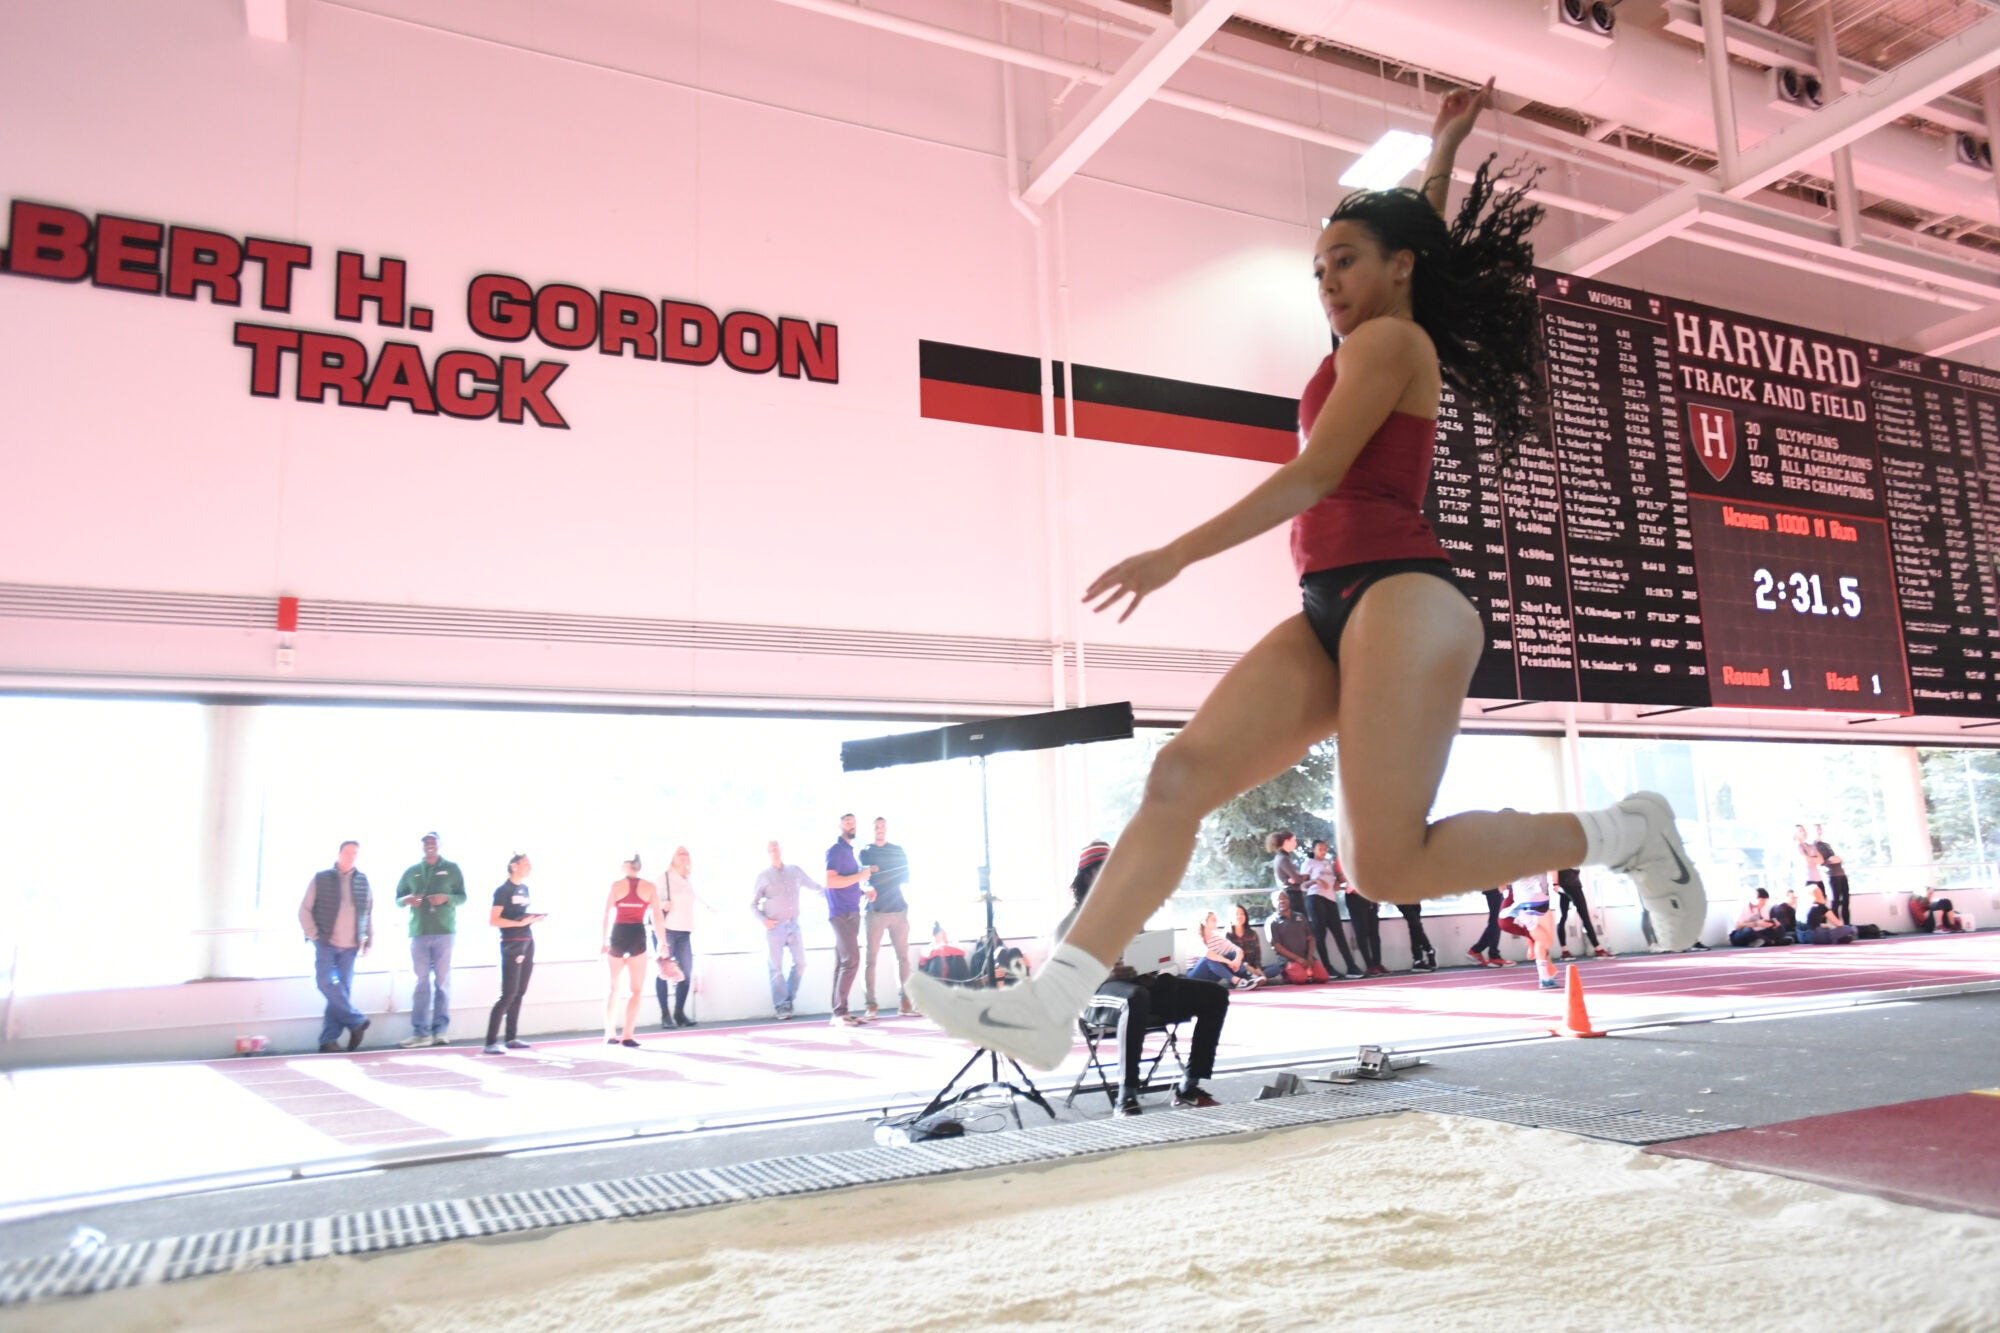 A woman leaping into a sand pit.